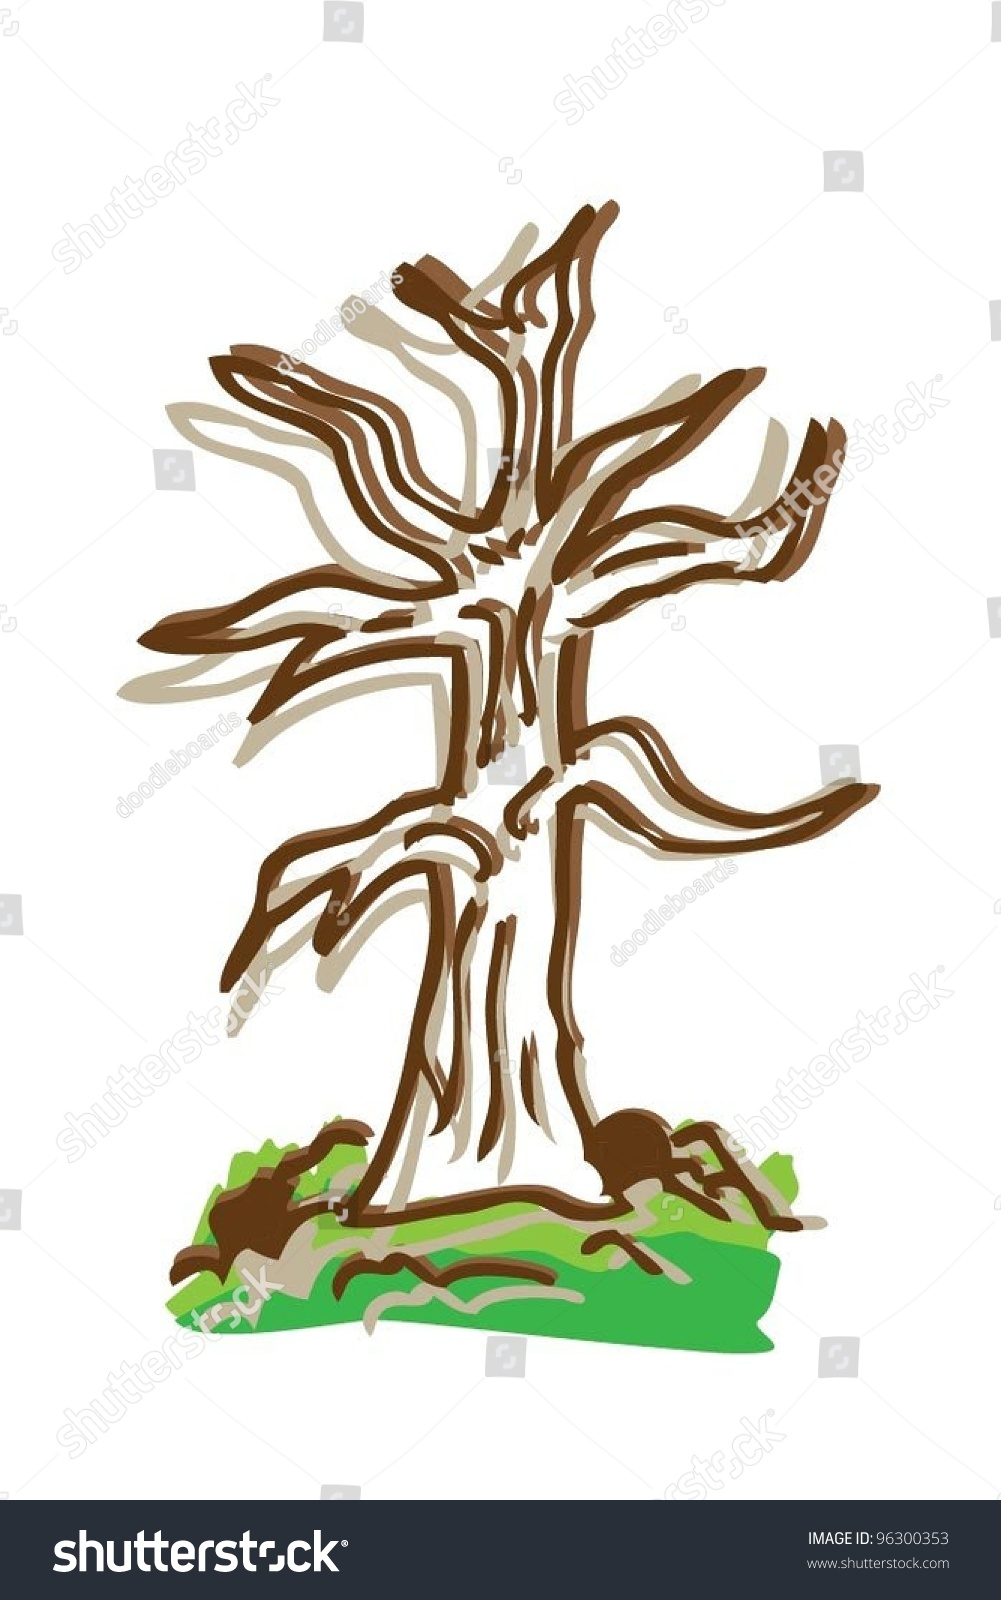 Cartoon Drawing Tree Color Vector Illustration Stock Vector Royalty Free 96300353 Finished drawing of cartoon trees. https www shutterstock com image vector cartoon drawing tree color vector illustration 96300353